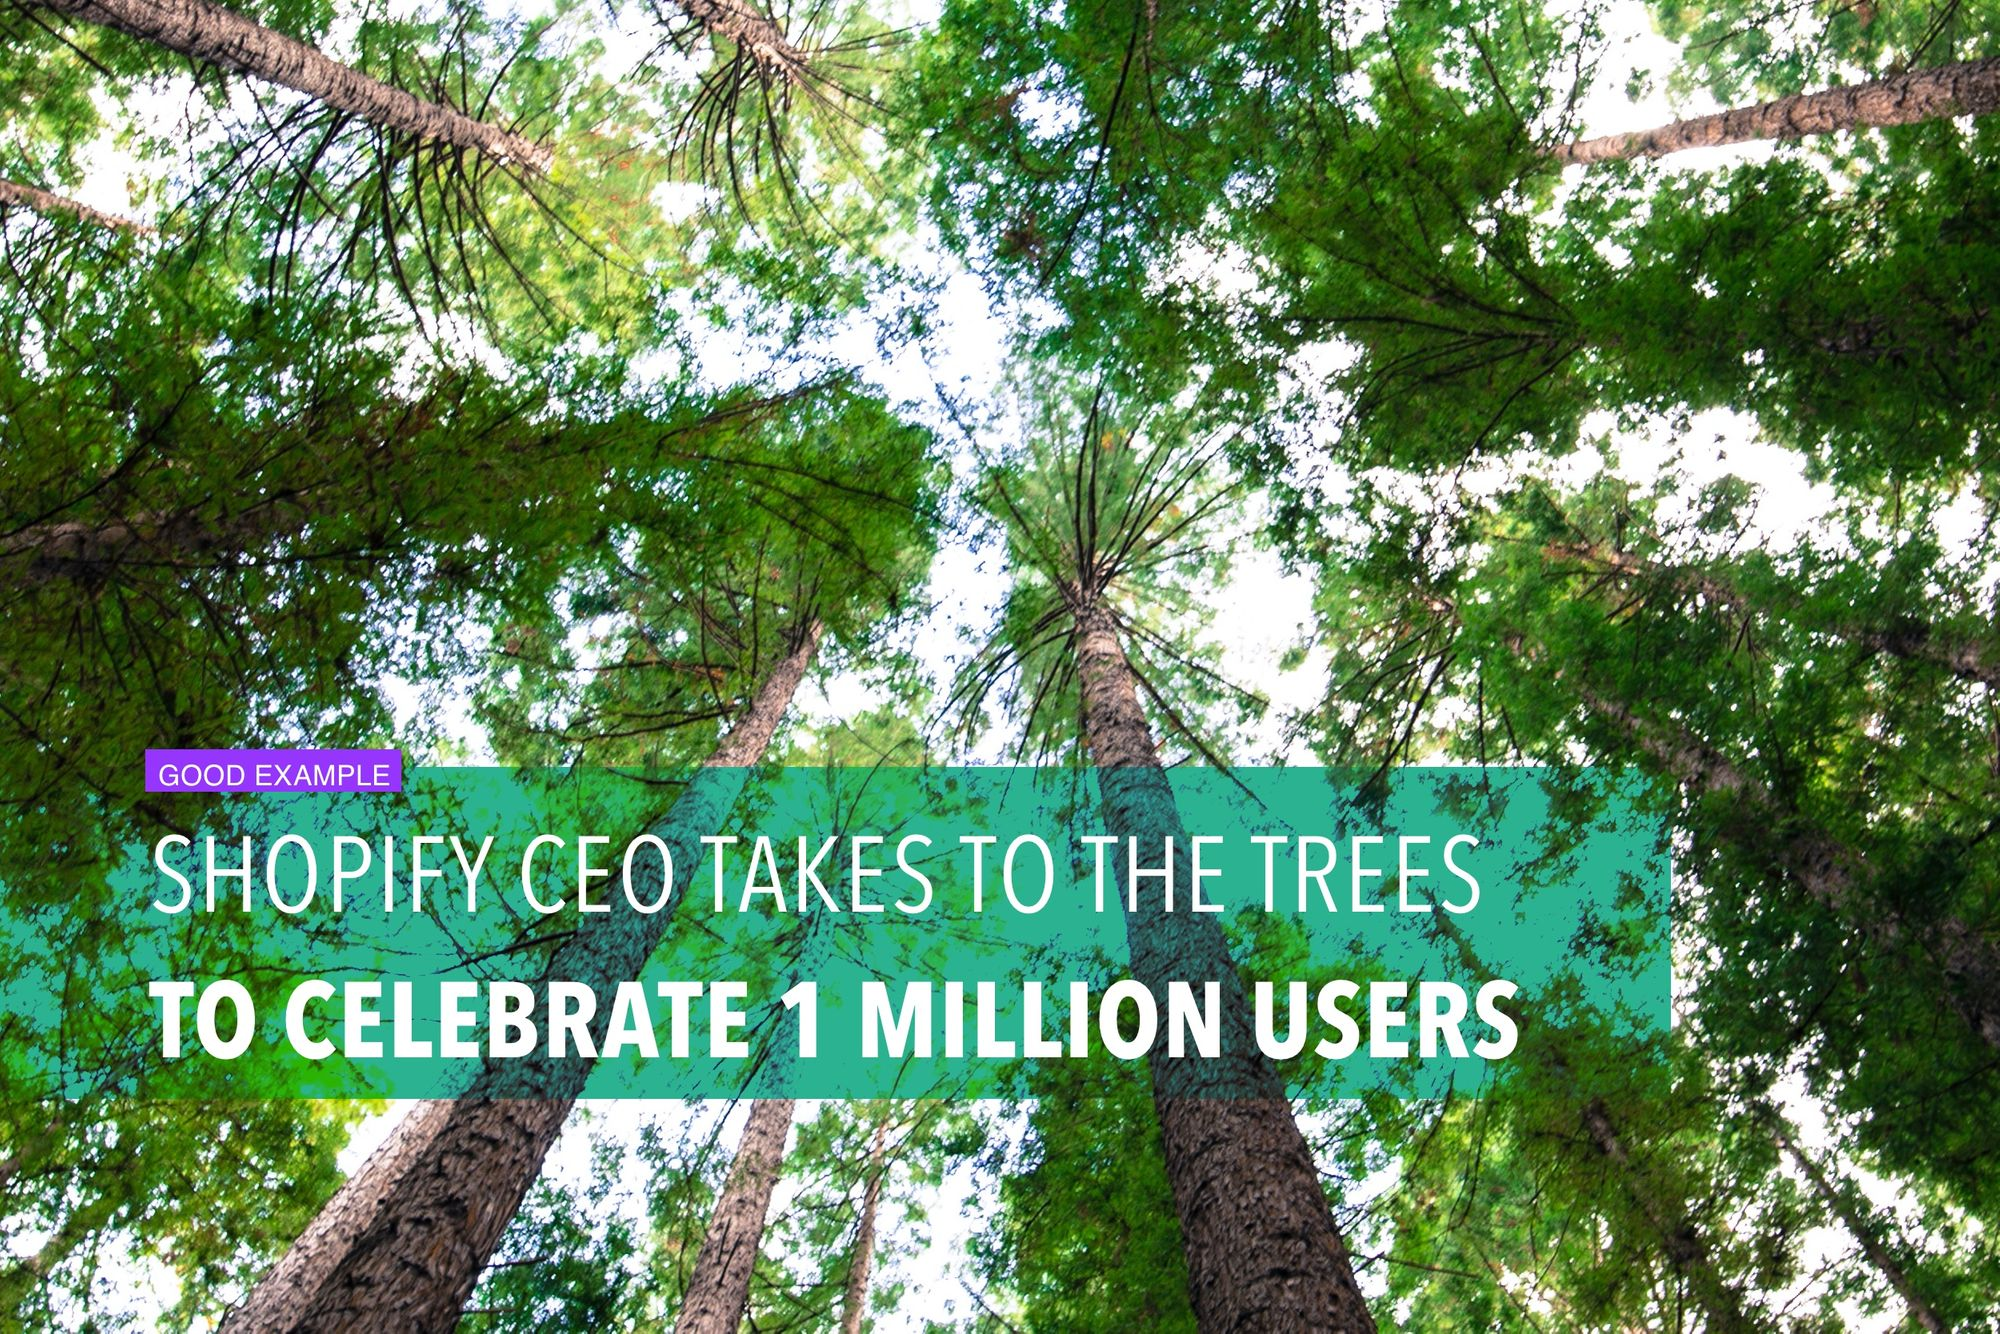 Shopify CEO takes to the trees to celebrate 1 million users